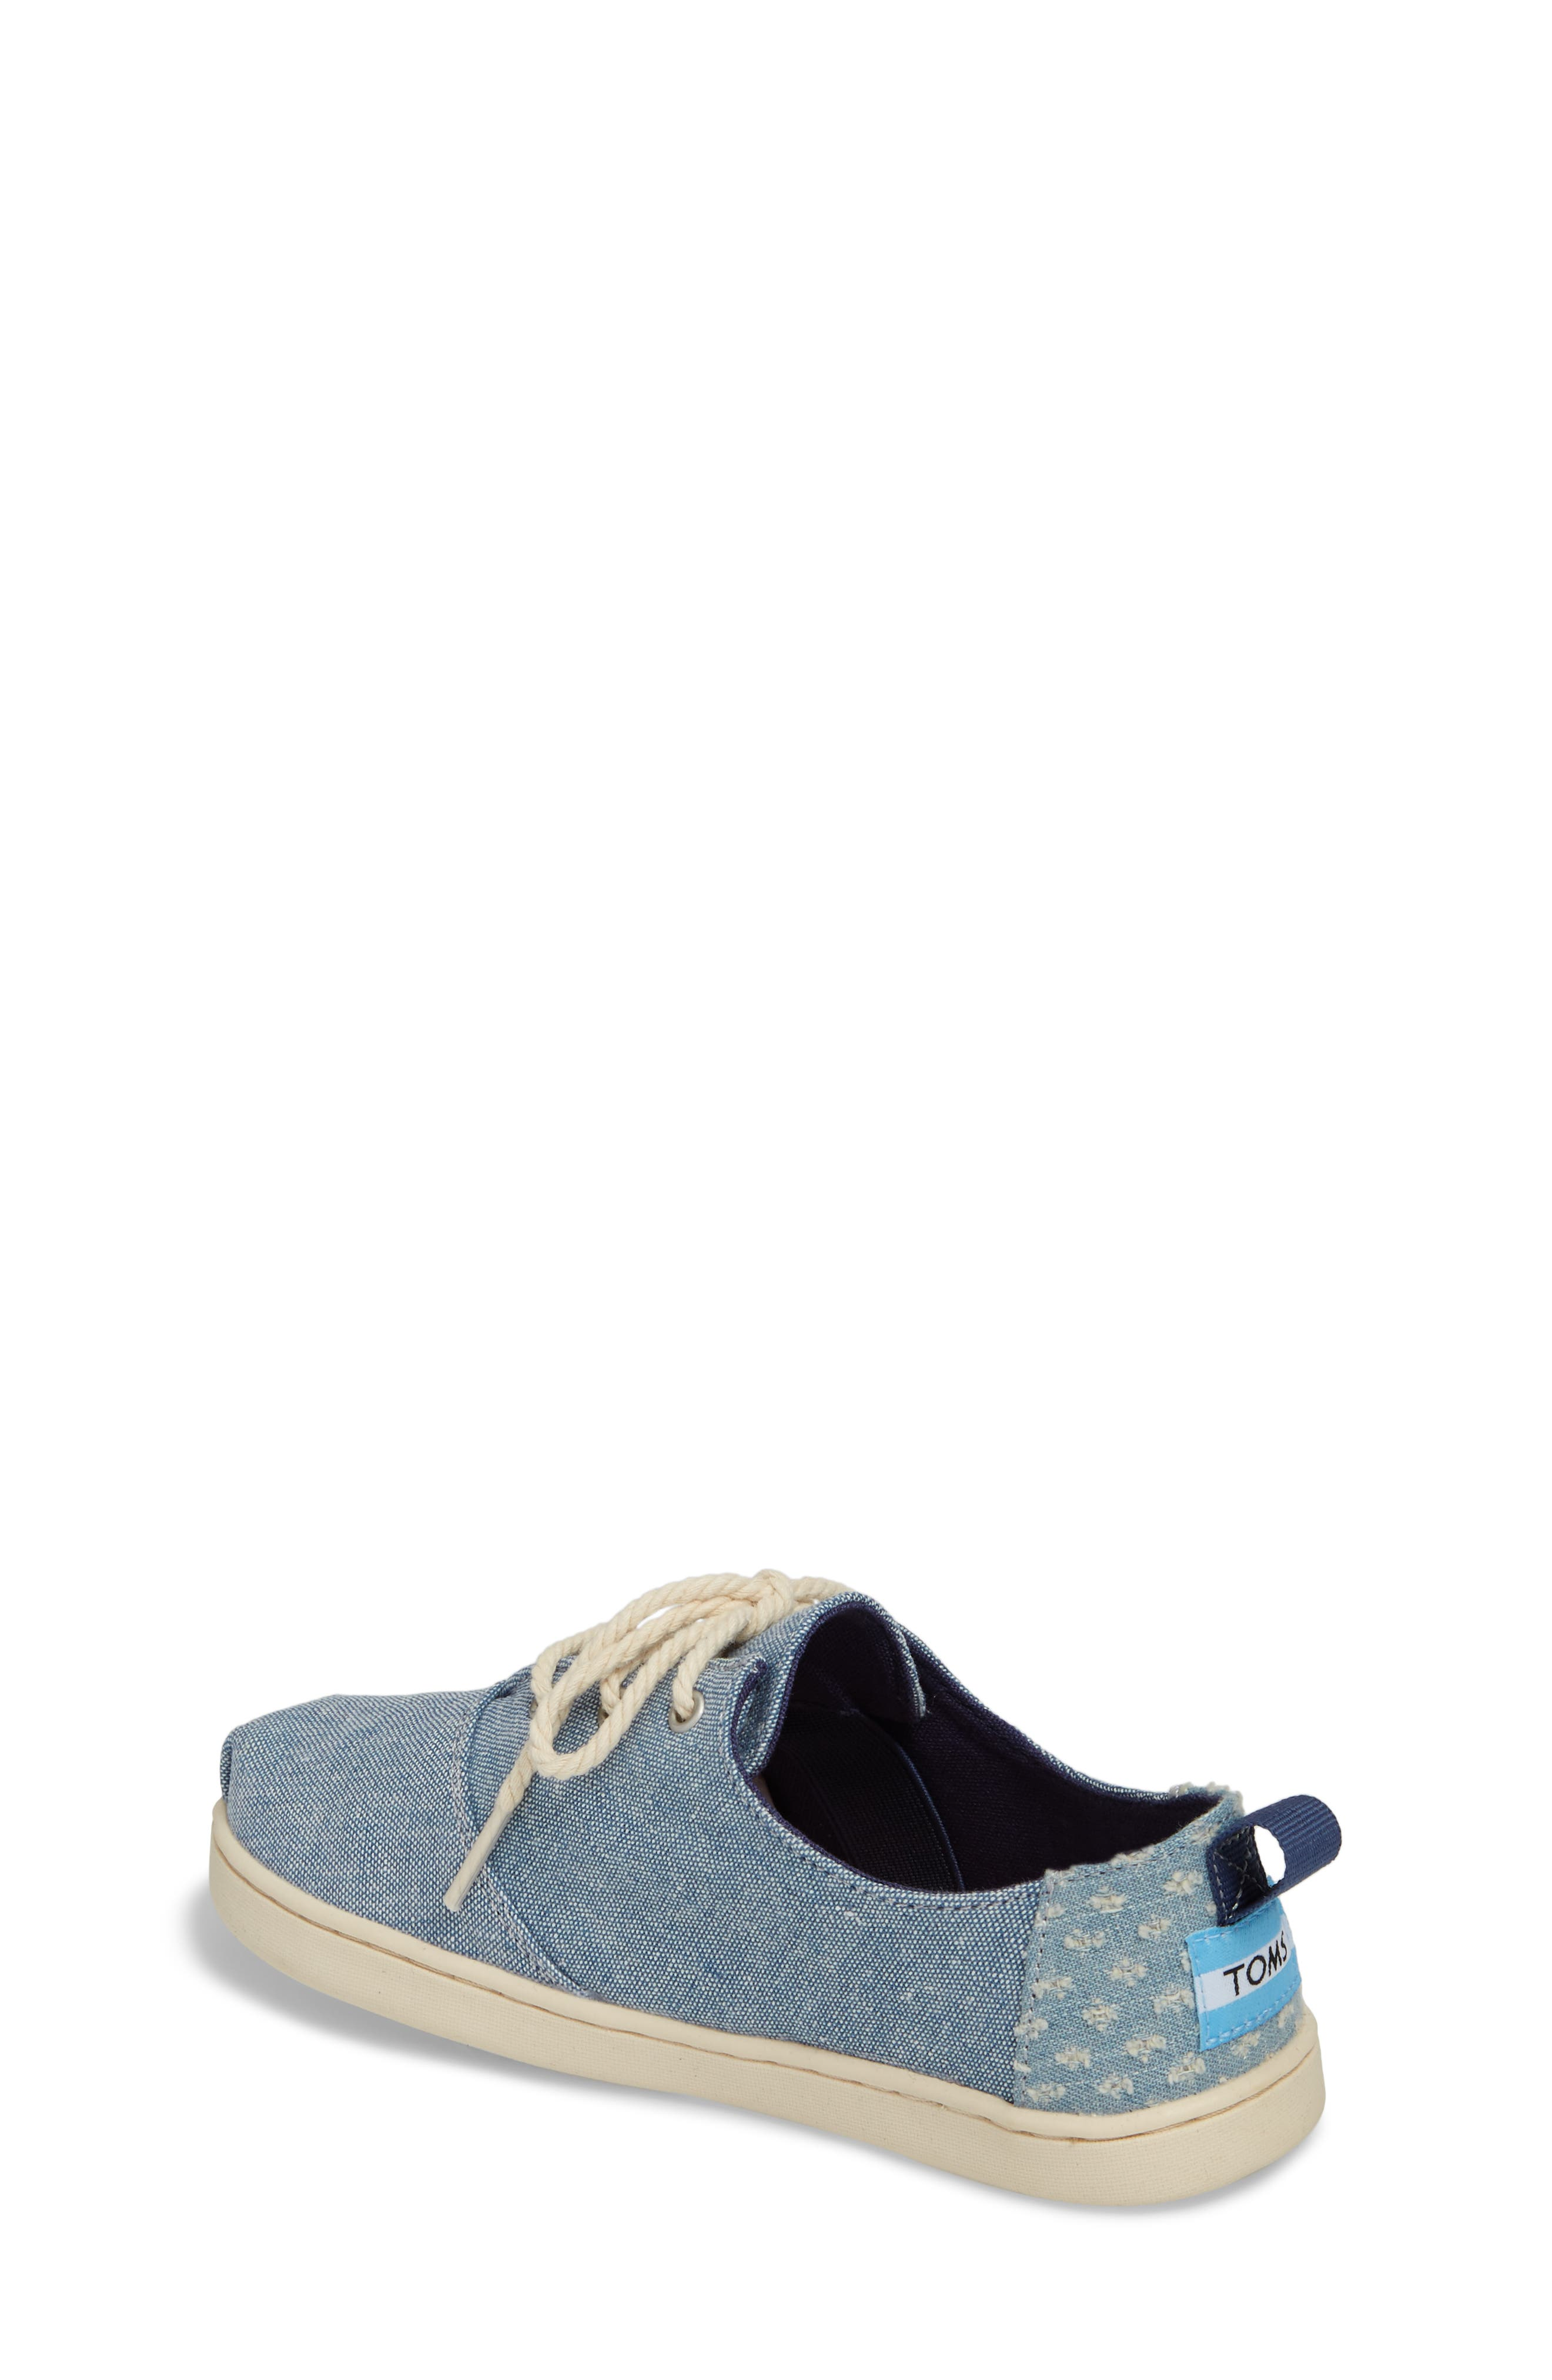 baby canvas crib shoes zoom listing toms cribs fullxfull polka il shoesbaby dot